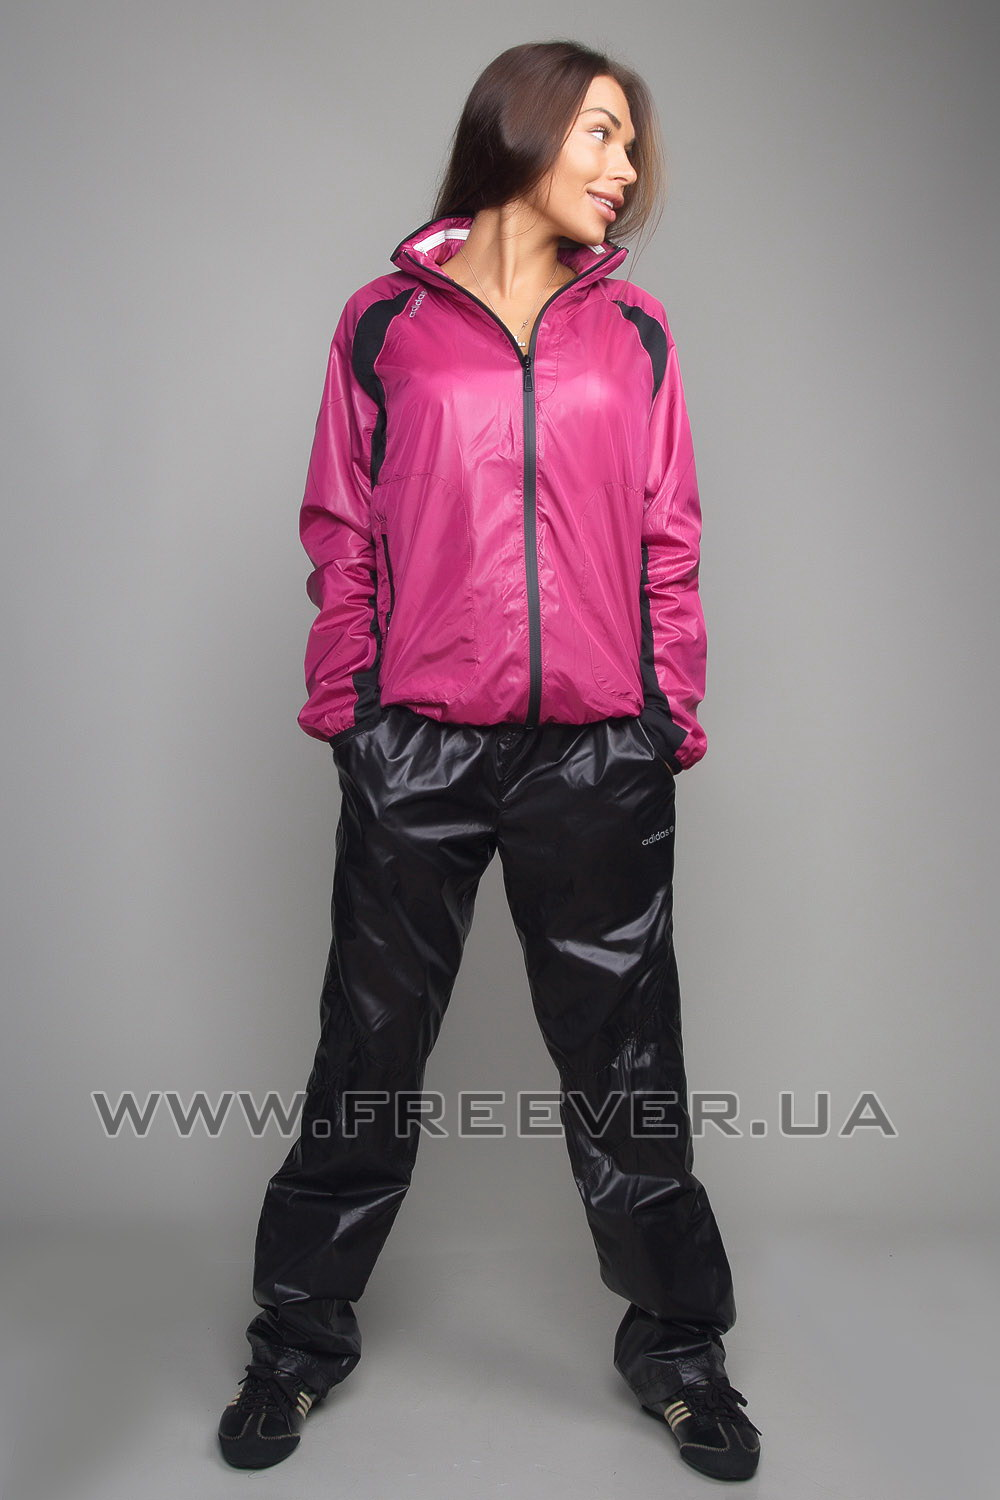 Black and Pink Shiny Tracksuit from Adidas